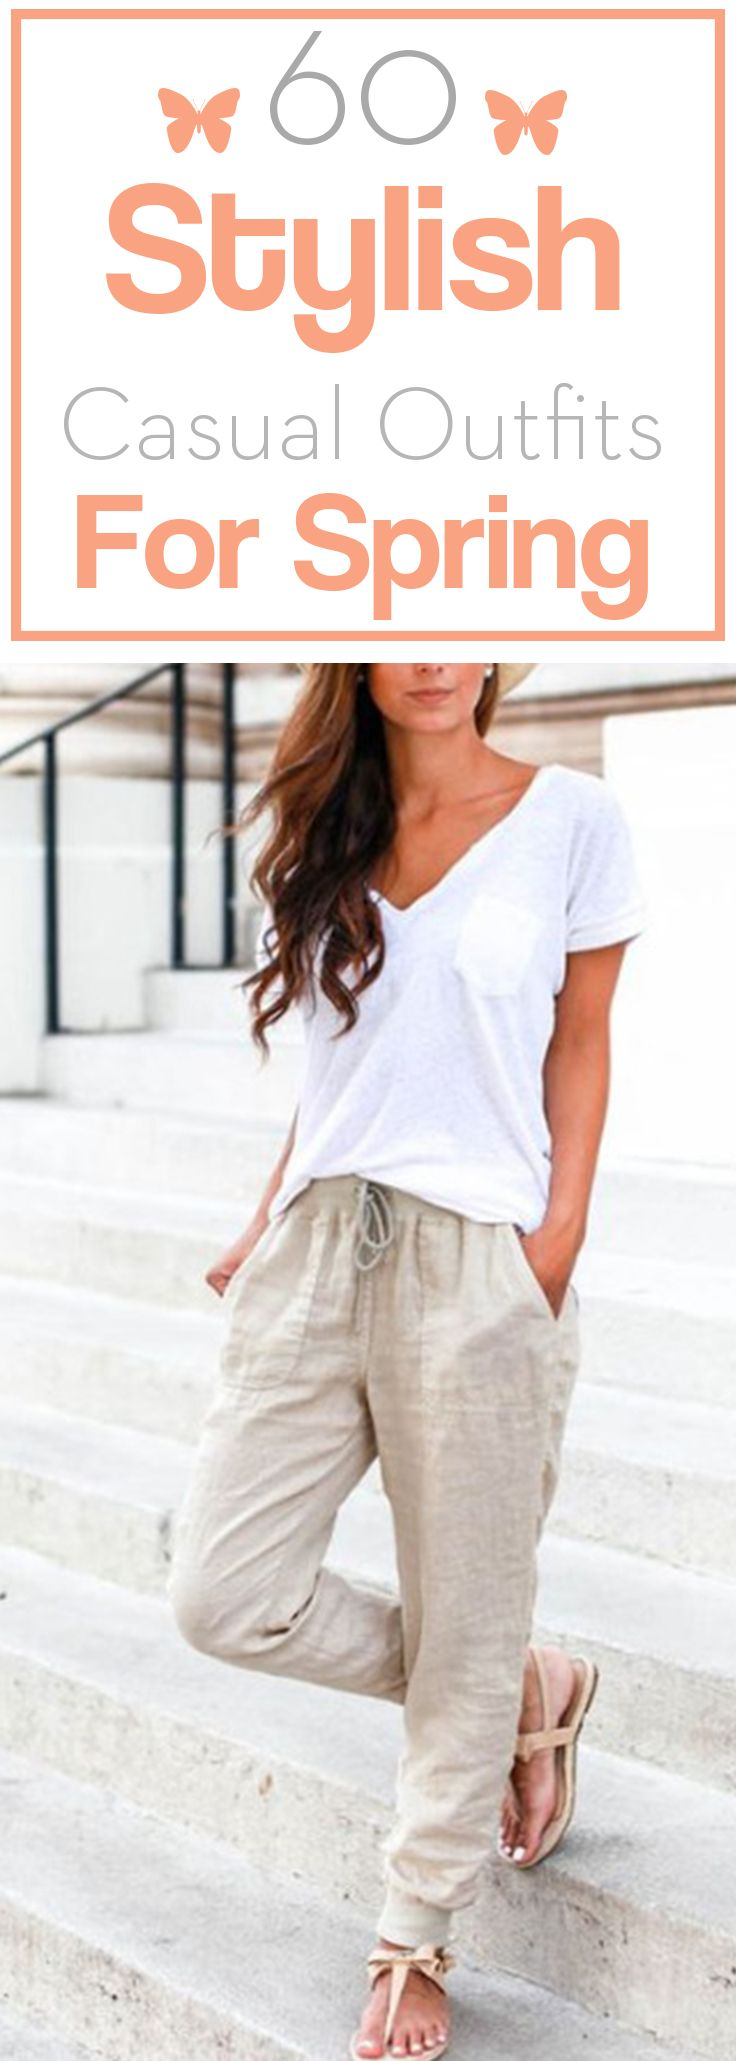 60 Stylish casual outfits for spring